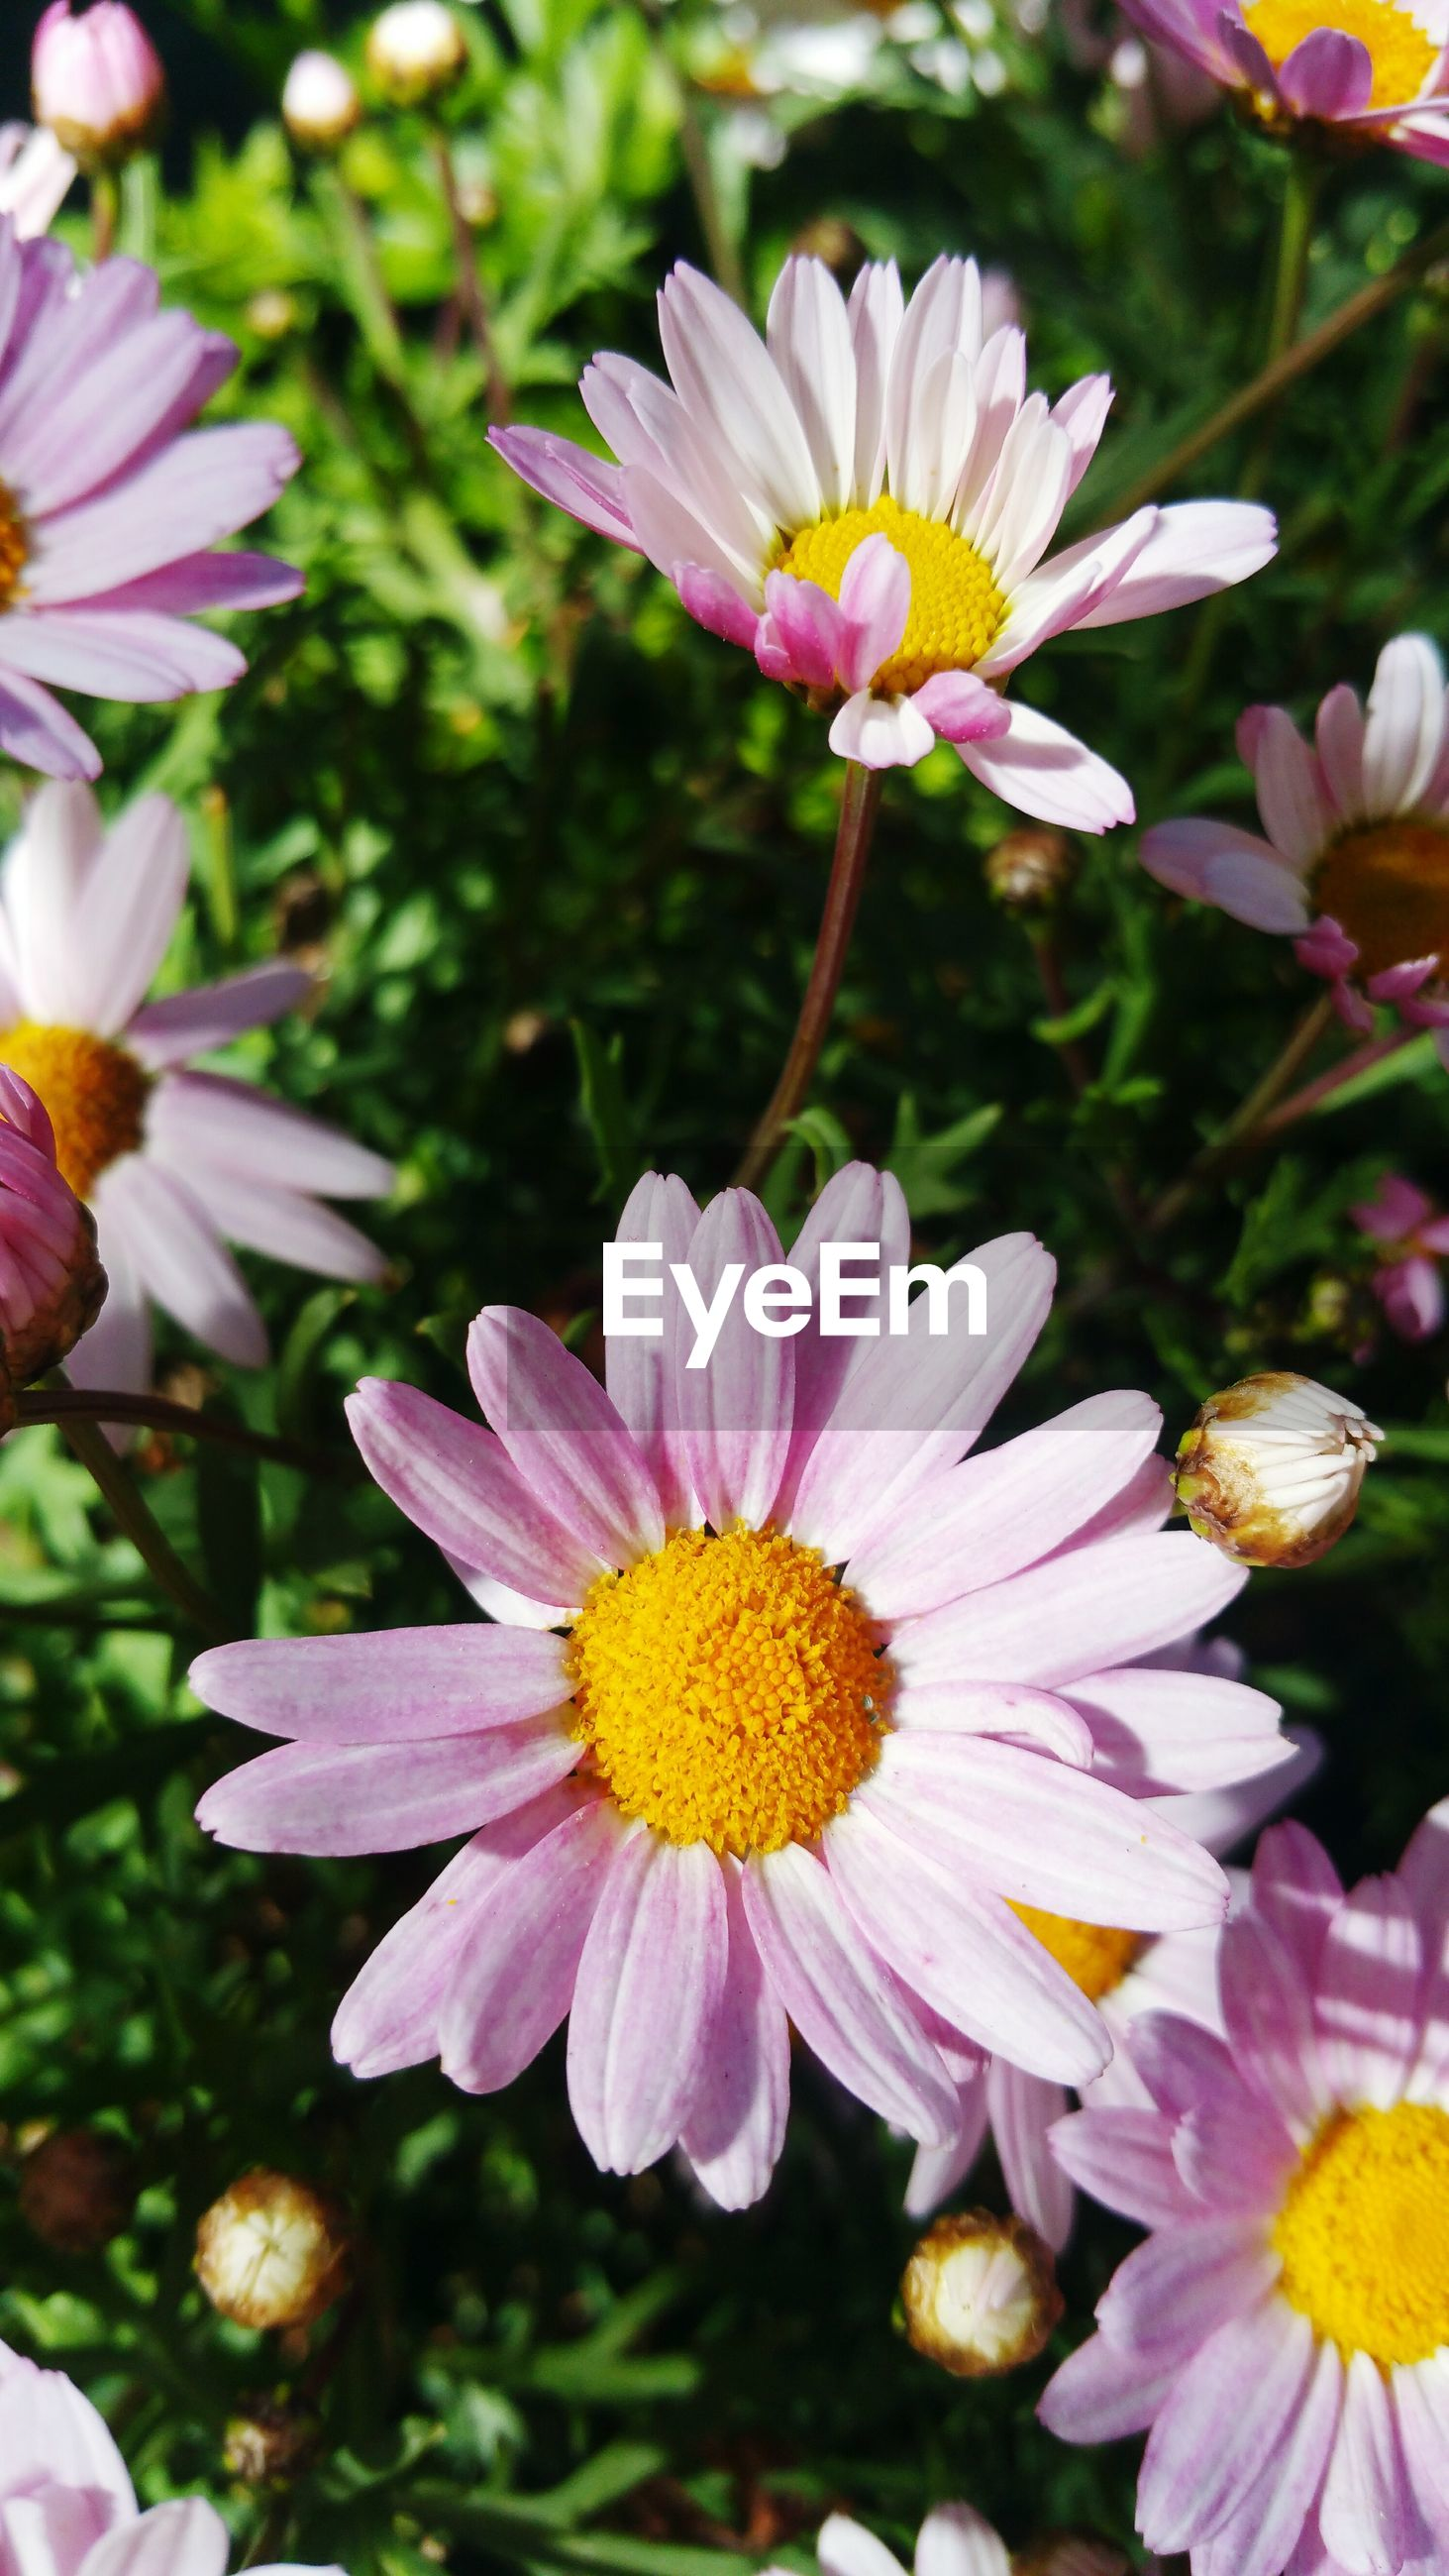 CLOSE-UP OF FRESH PINK DAISY FLOWERS BLOOMING OUTDOORS